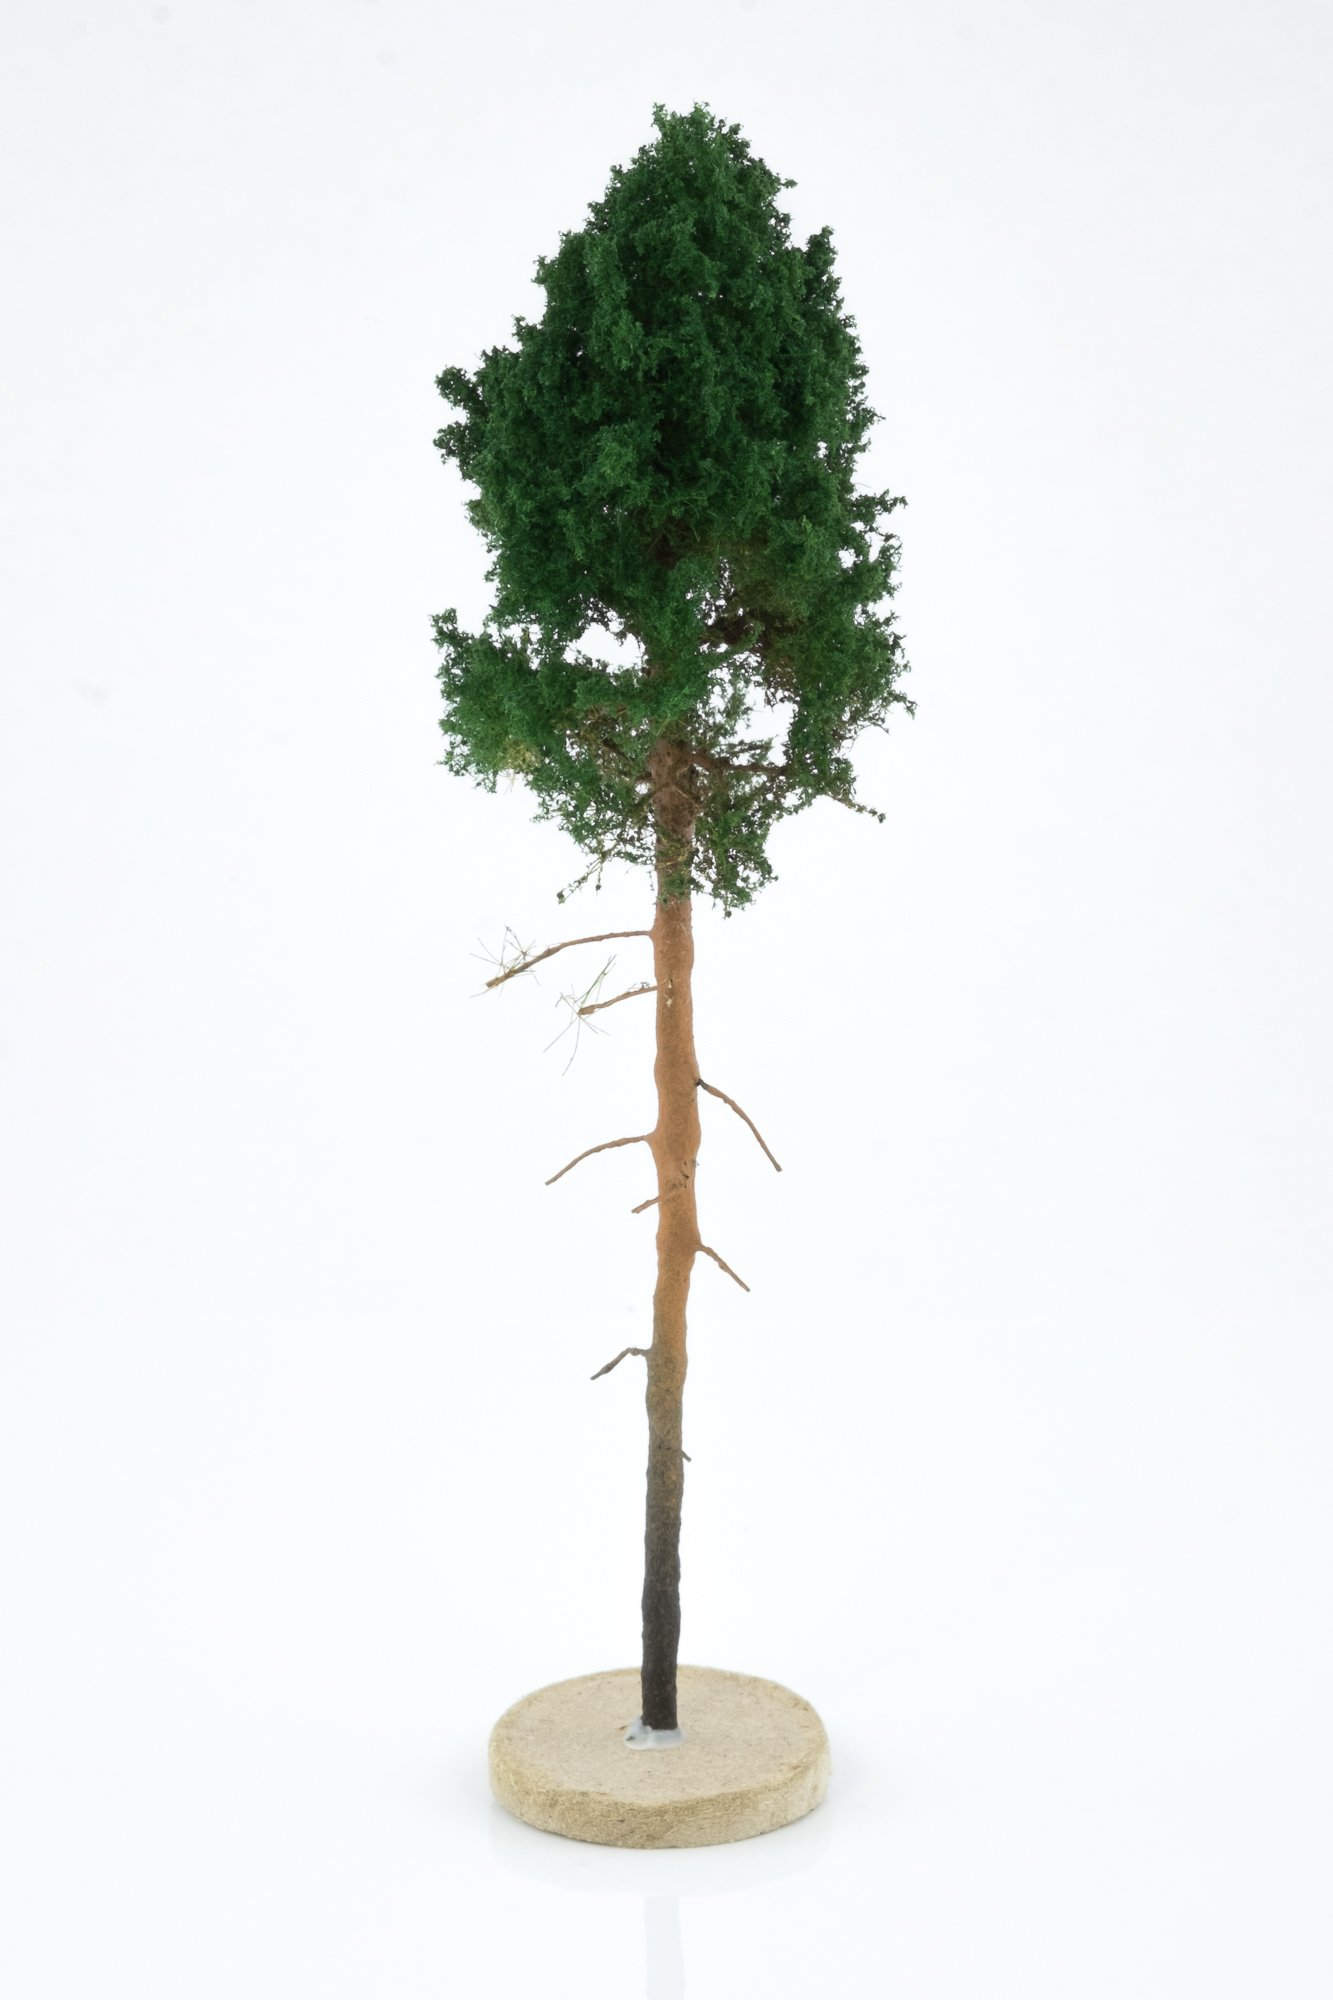 Hand-made, green, young pine tree model. Size between 18 and 20 cm. Made from high quality model supplies by Primo Models.